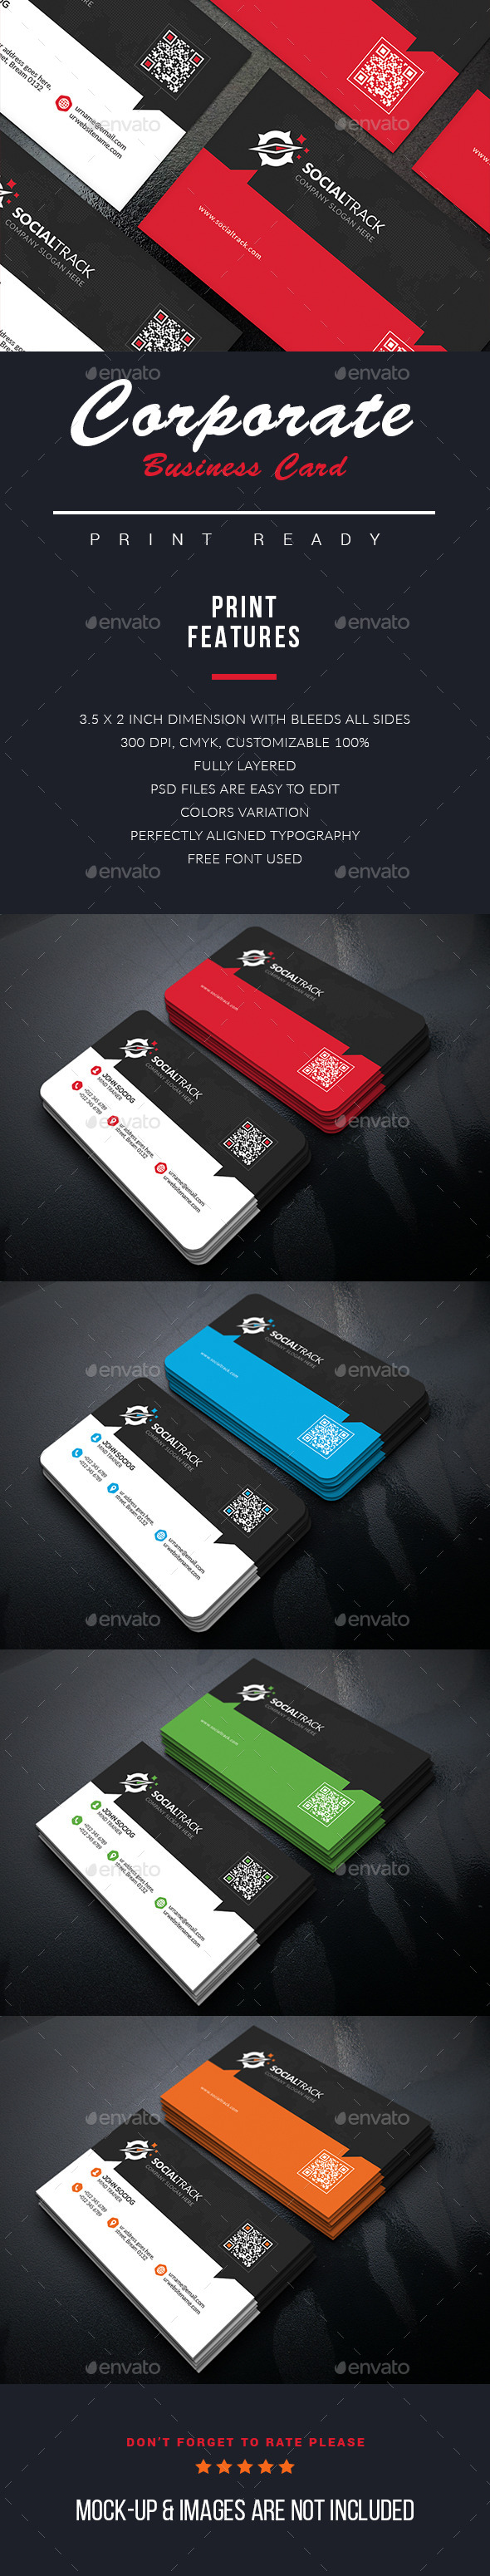 Social Corporate Business Cards - Business Cards Print Templates